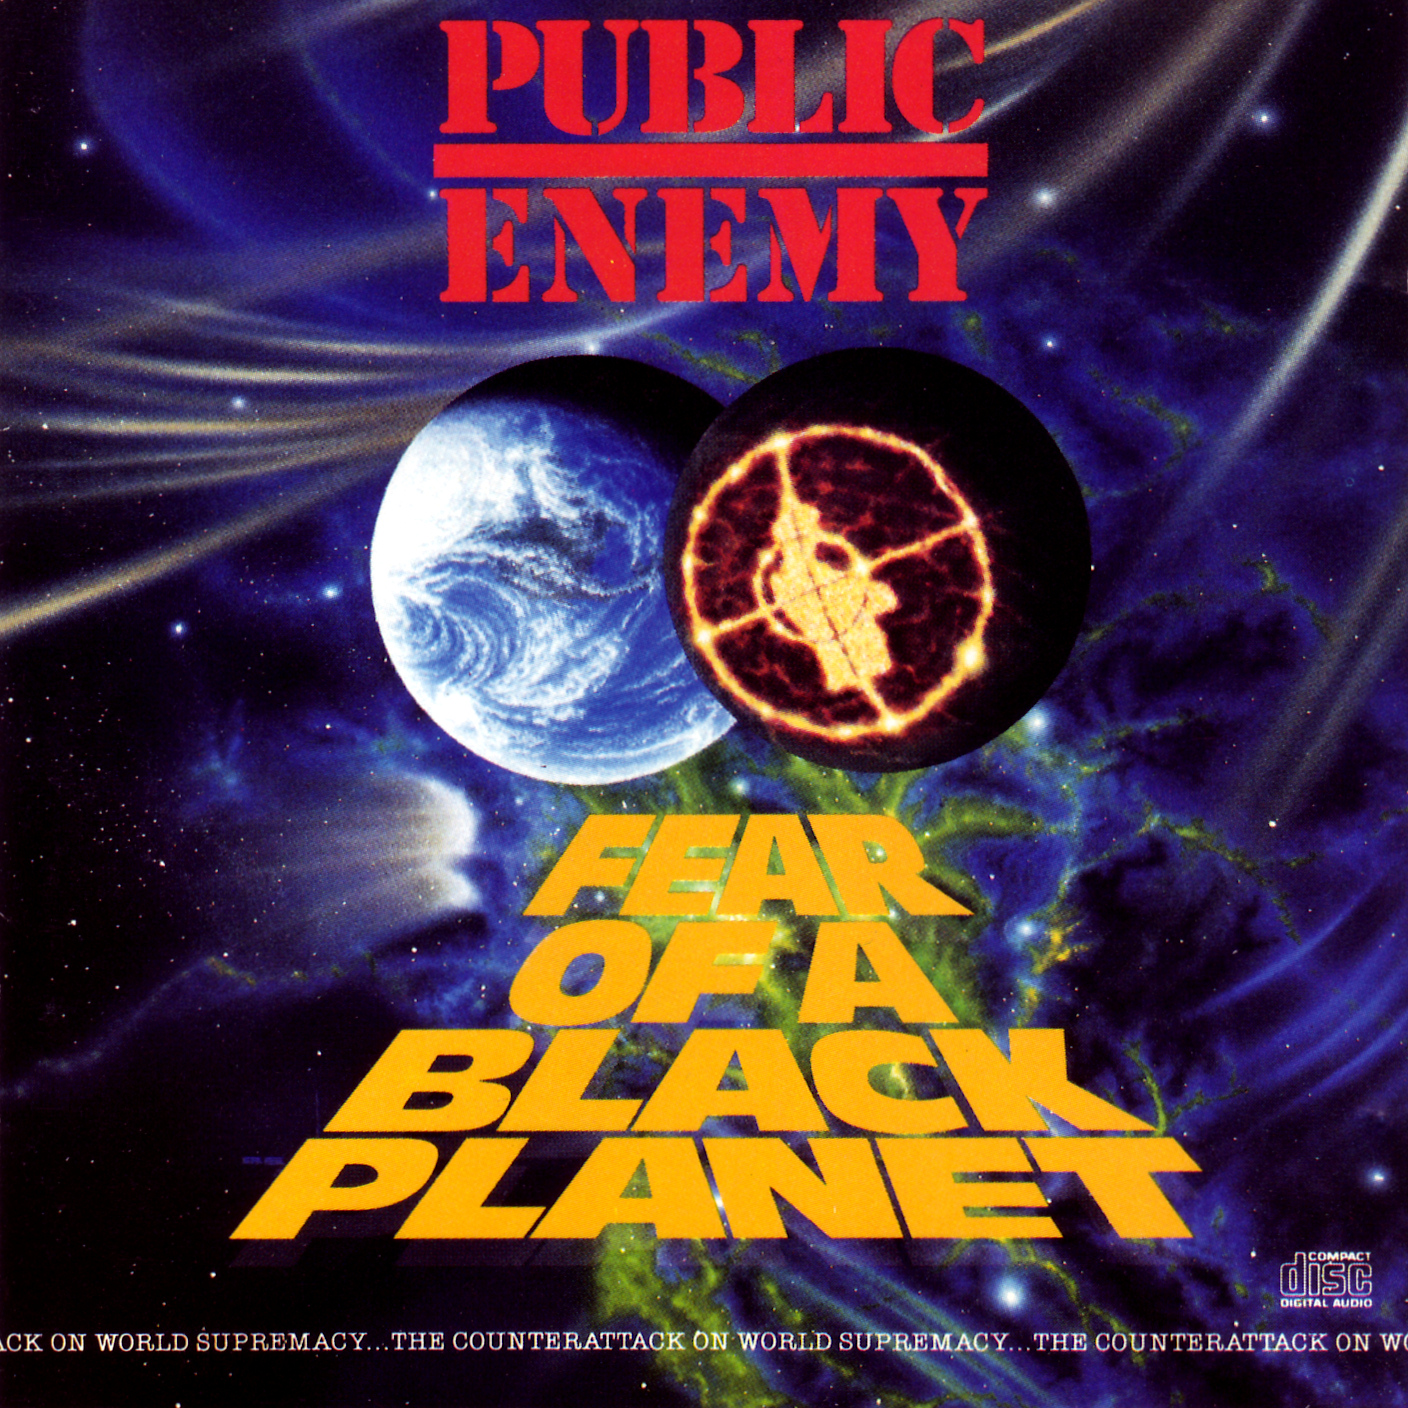 Public Enemy, Fear of a black planet, It takes a nation of millions to hold us back, deluxe editions, track listings, def jam, chuck d, flavor flav, rick rubin